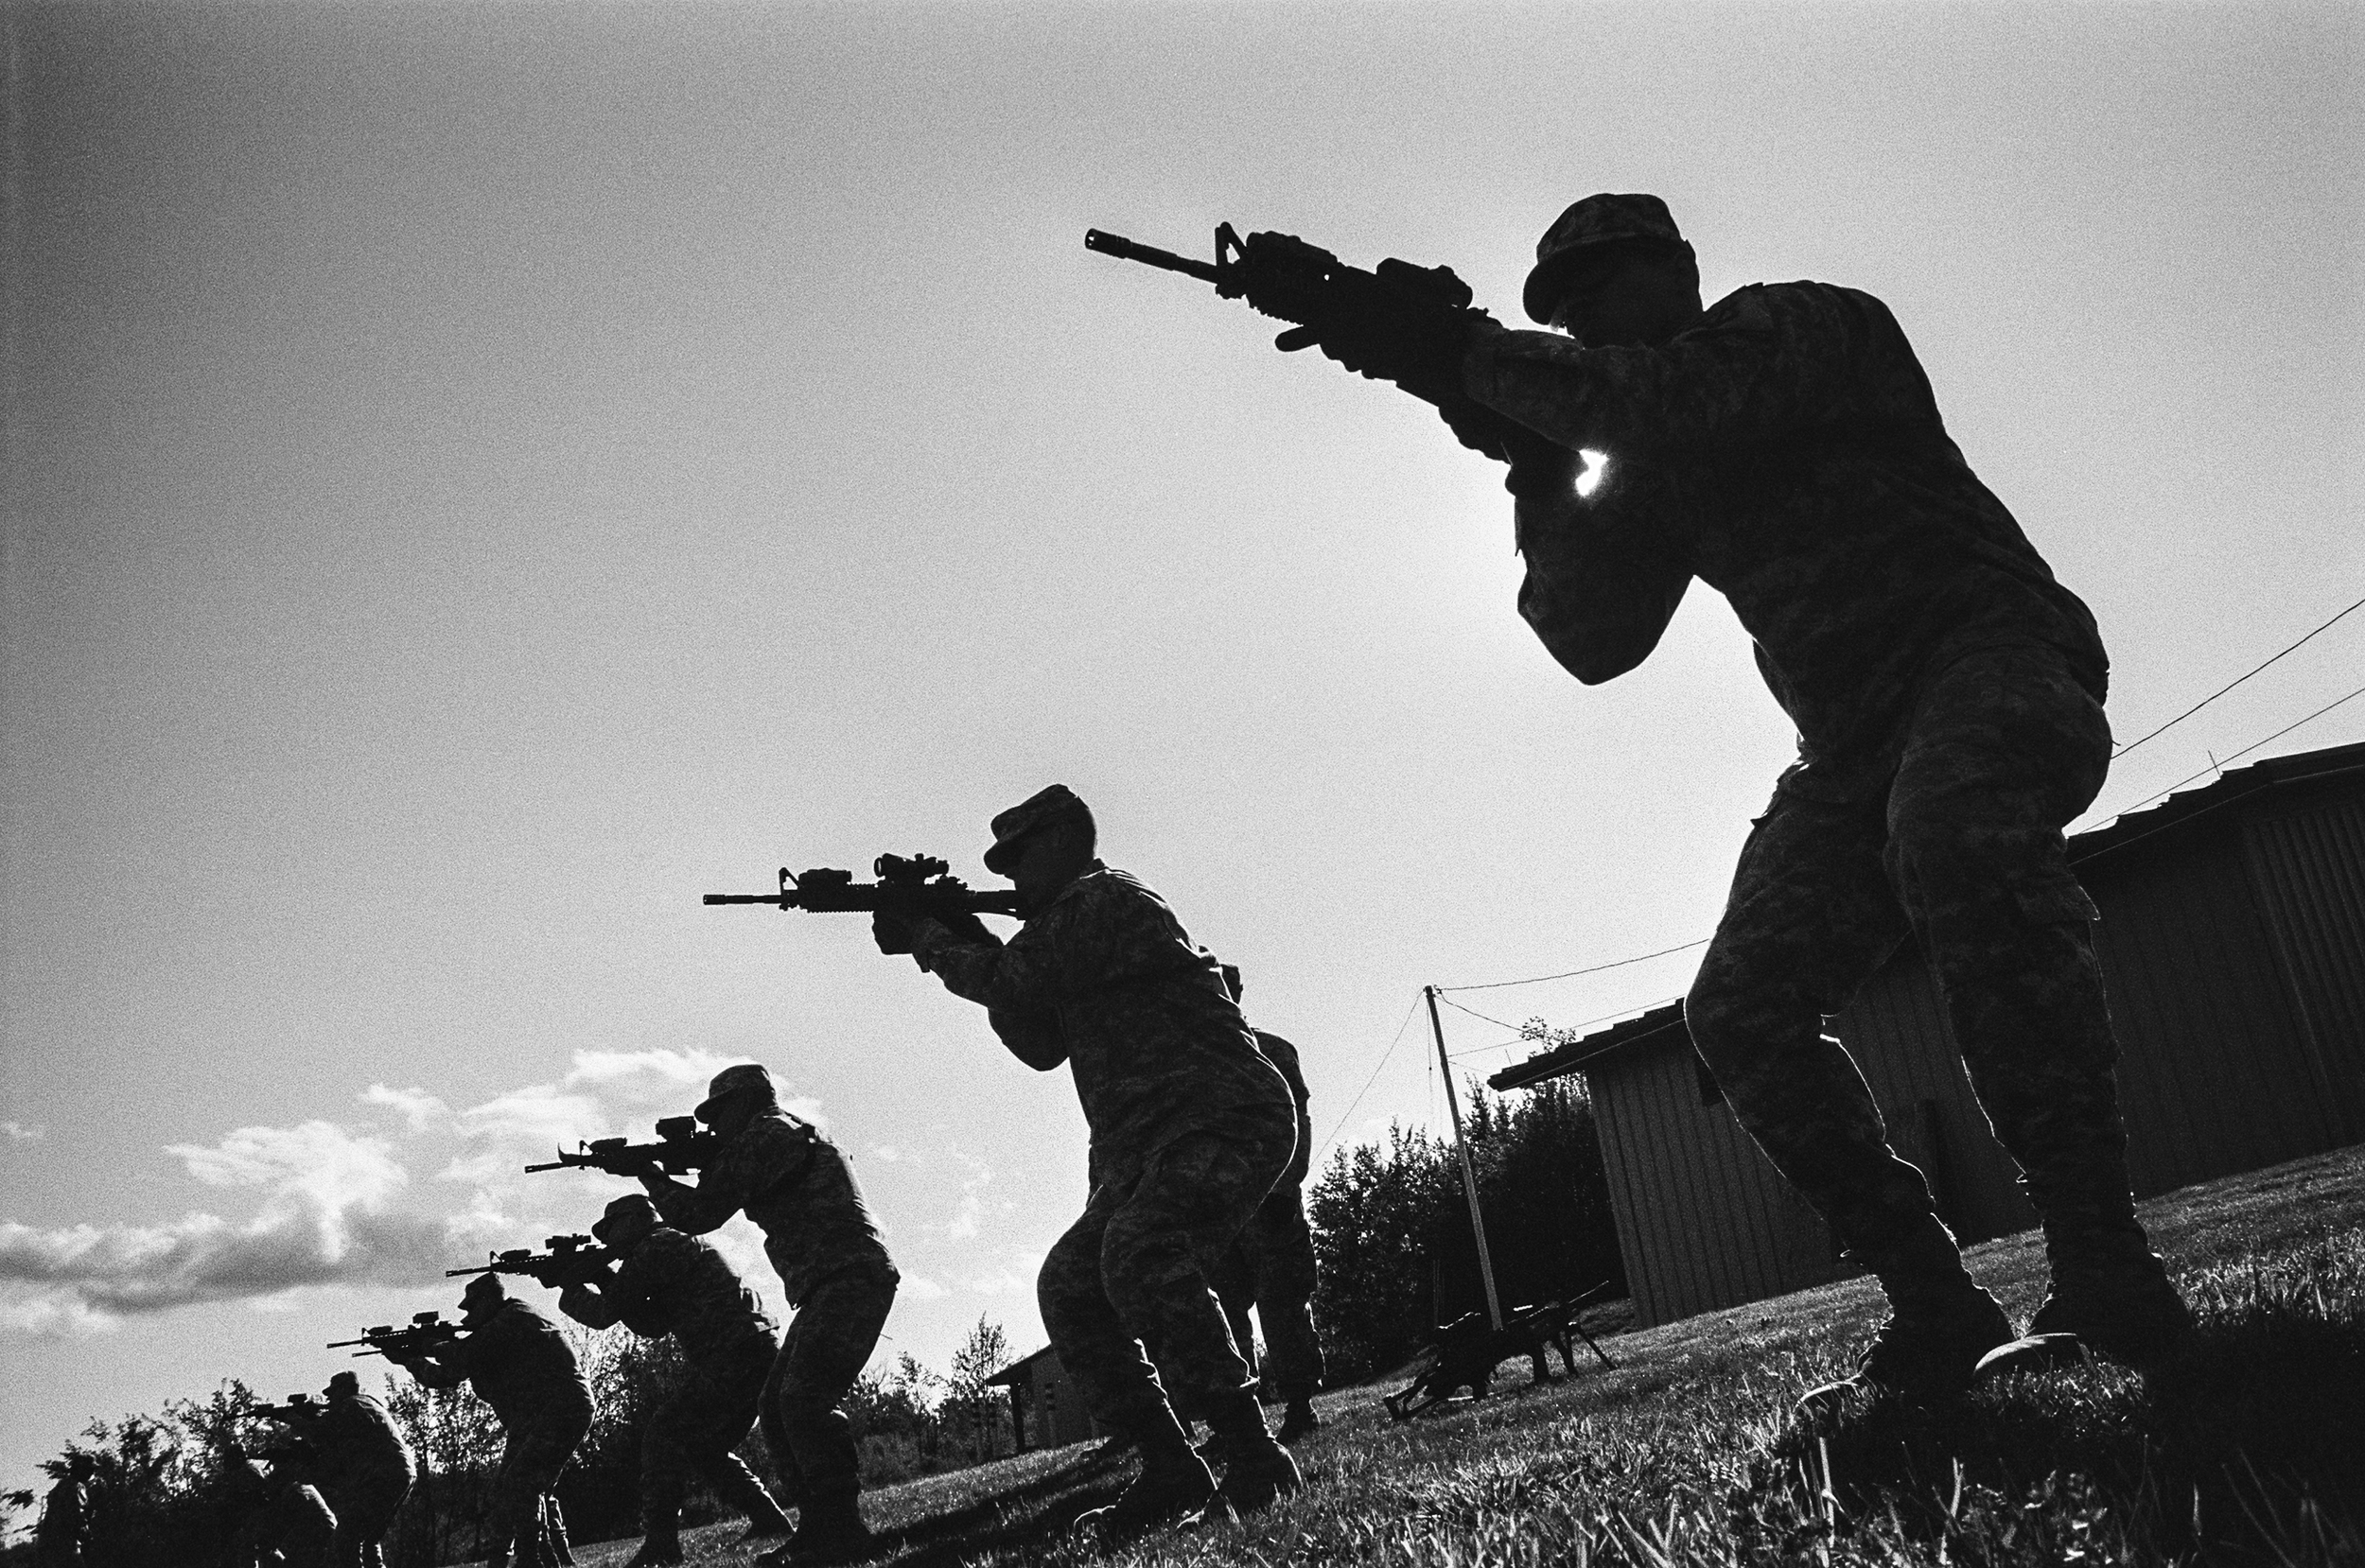 Soldiers participate in training drills at Fort Drum, New York, 2010.